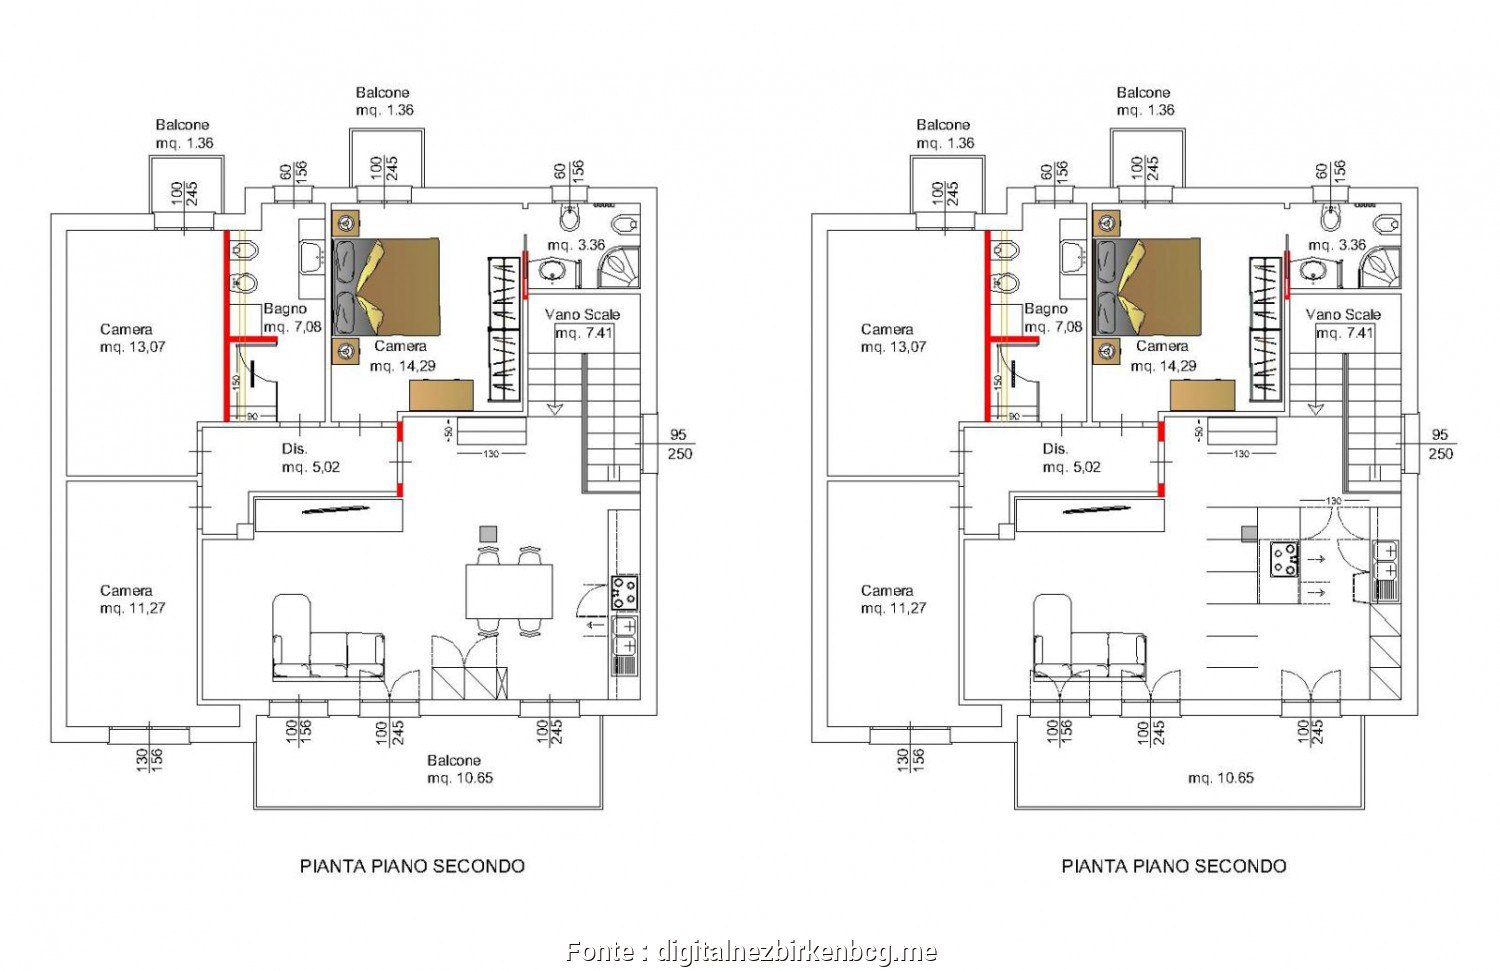 Grande 4 Camere Letto Dwg - Keever For Congress